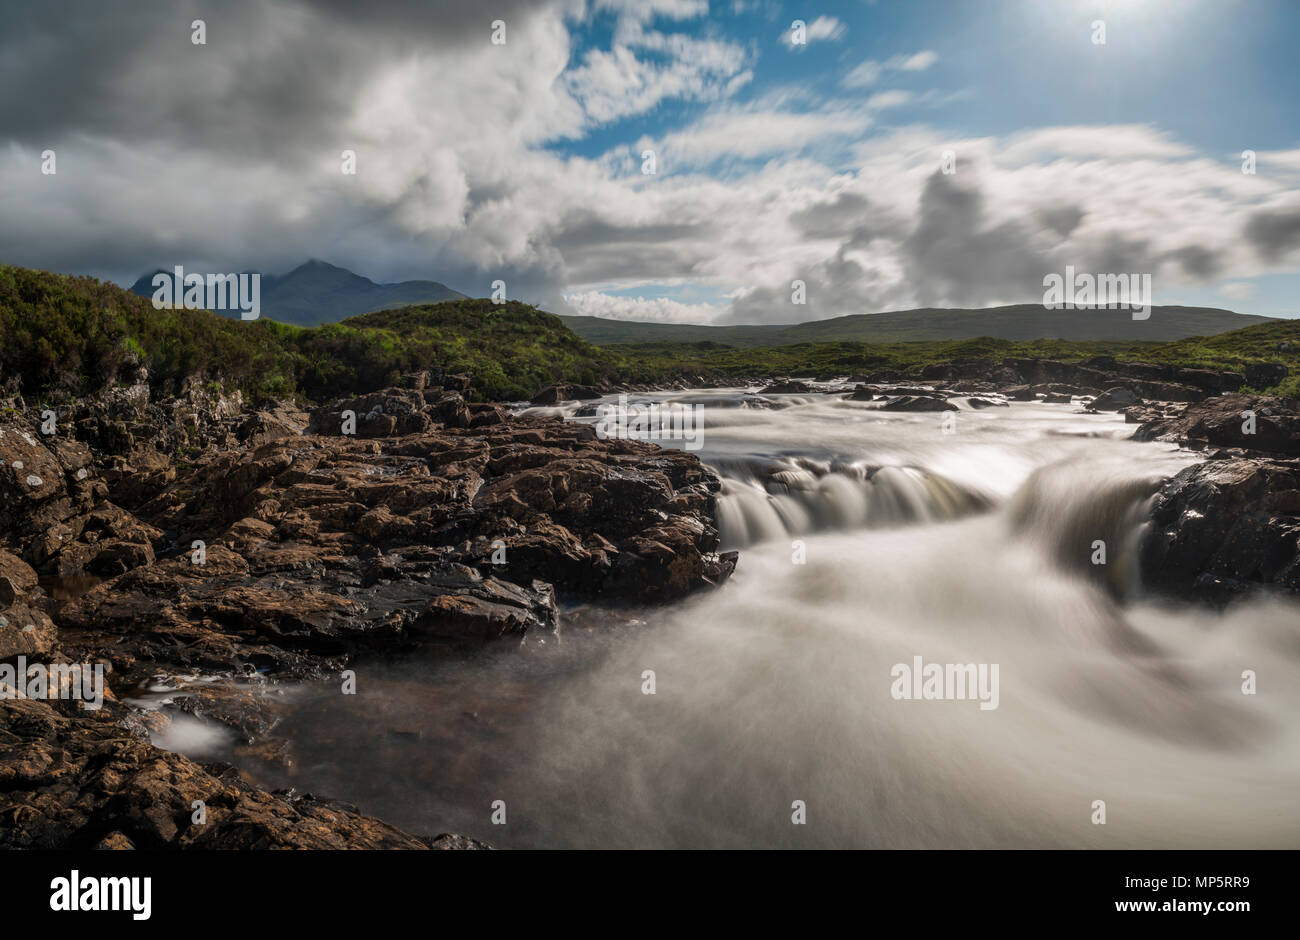 Scottish highlands - River Sligachan, Isle of Skye, Scotland, UK with the Black Cuillin mountains in the distance - Stock Image